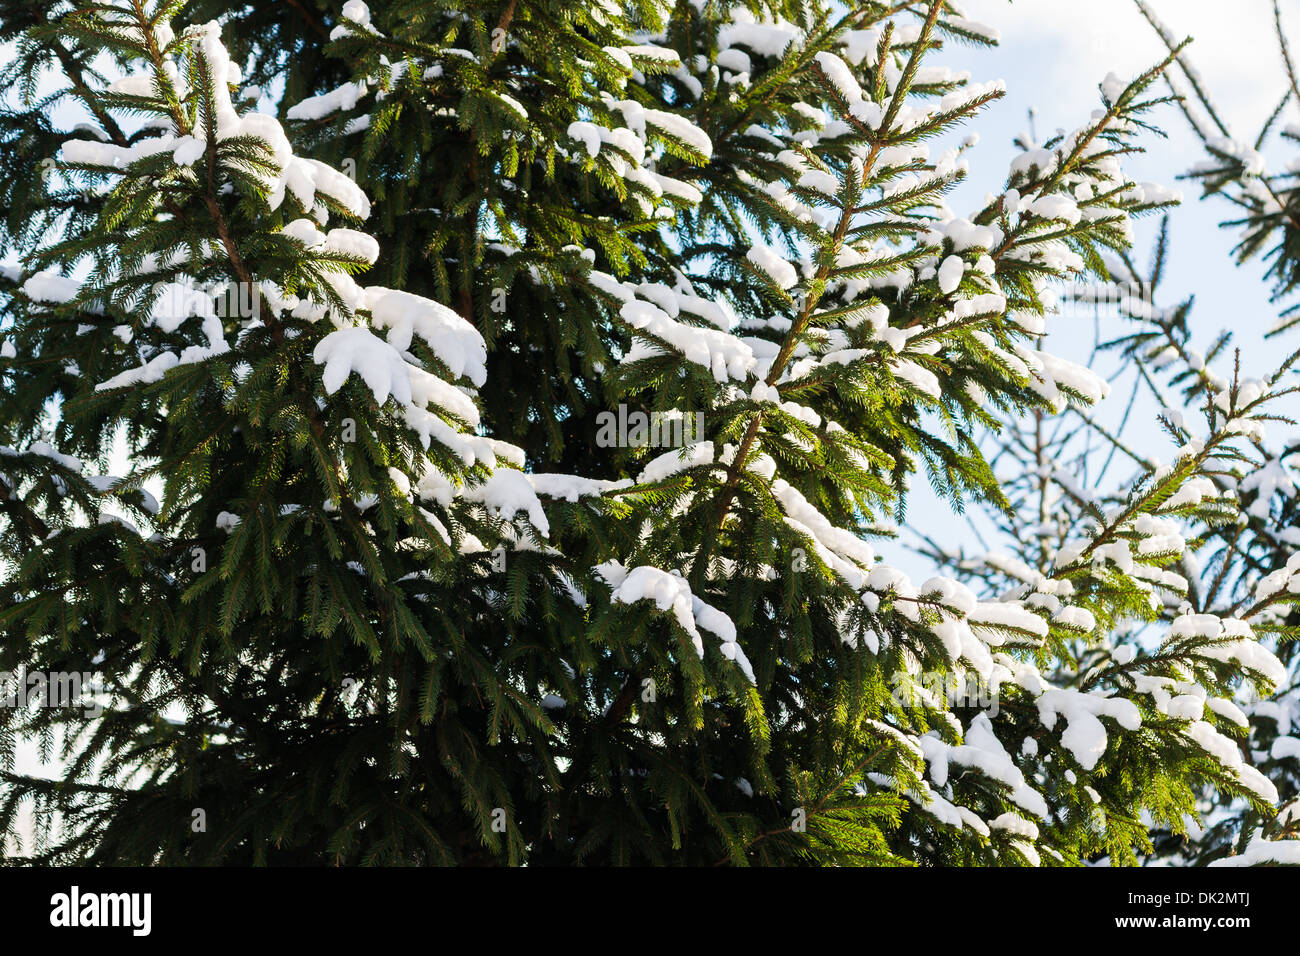 Christmas Tree 4. Closeup view of a spruce tree, covered with fresh snow. The evergreen joyfulness of Christmas holidays - Stock Image